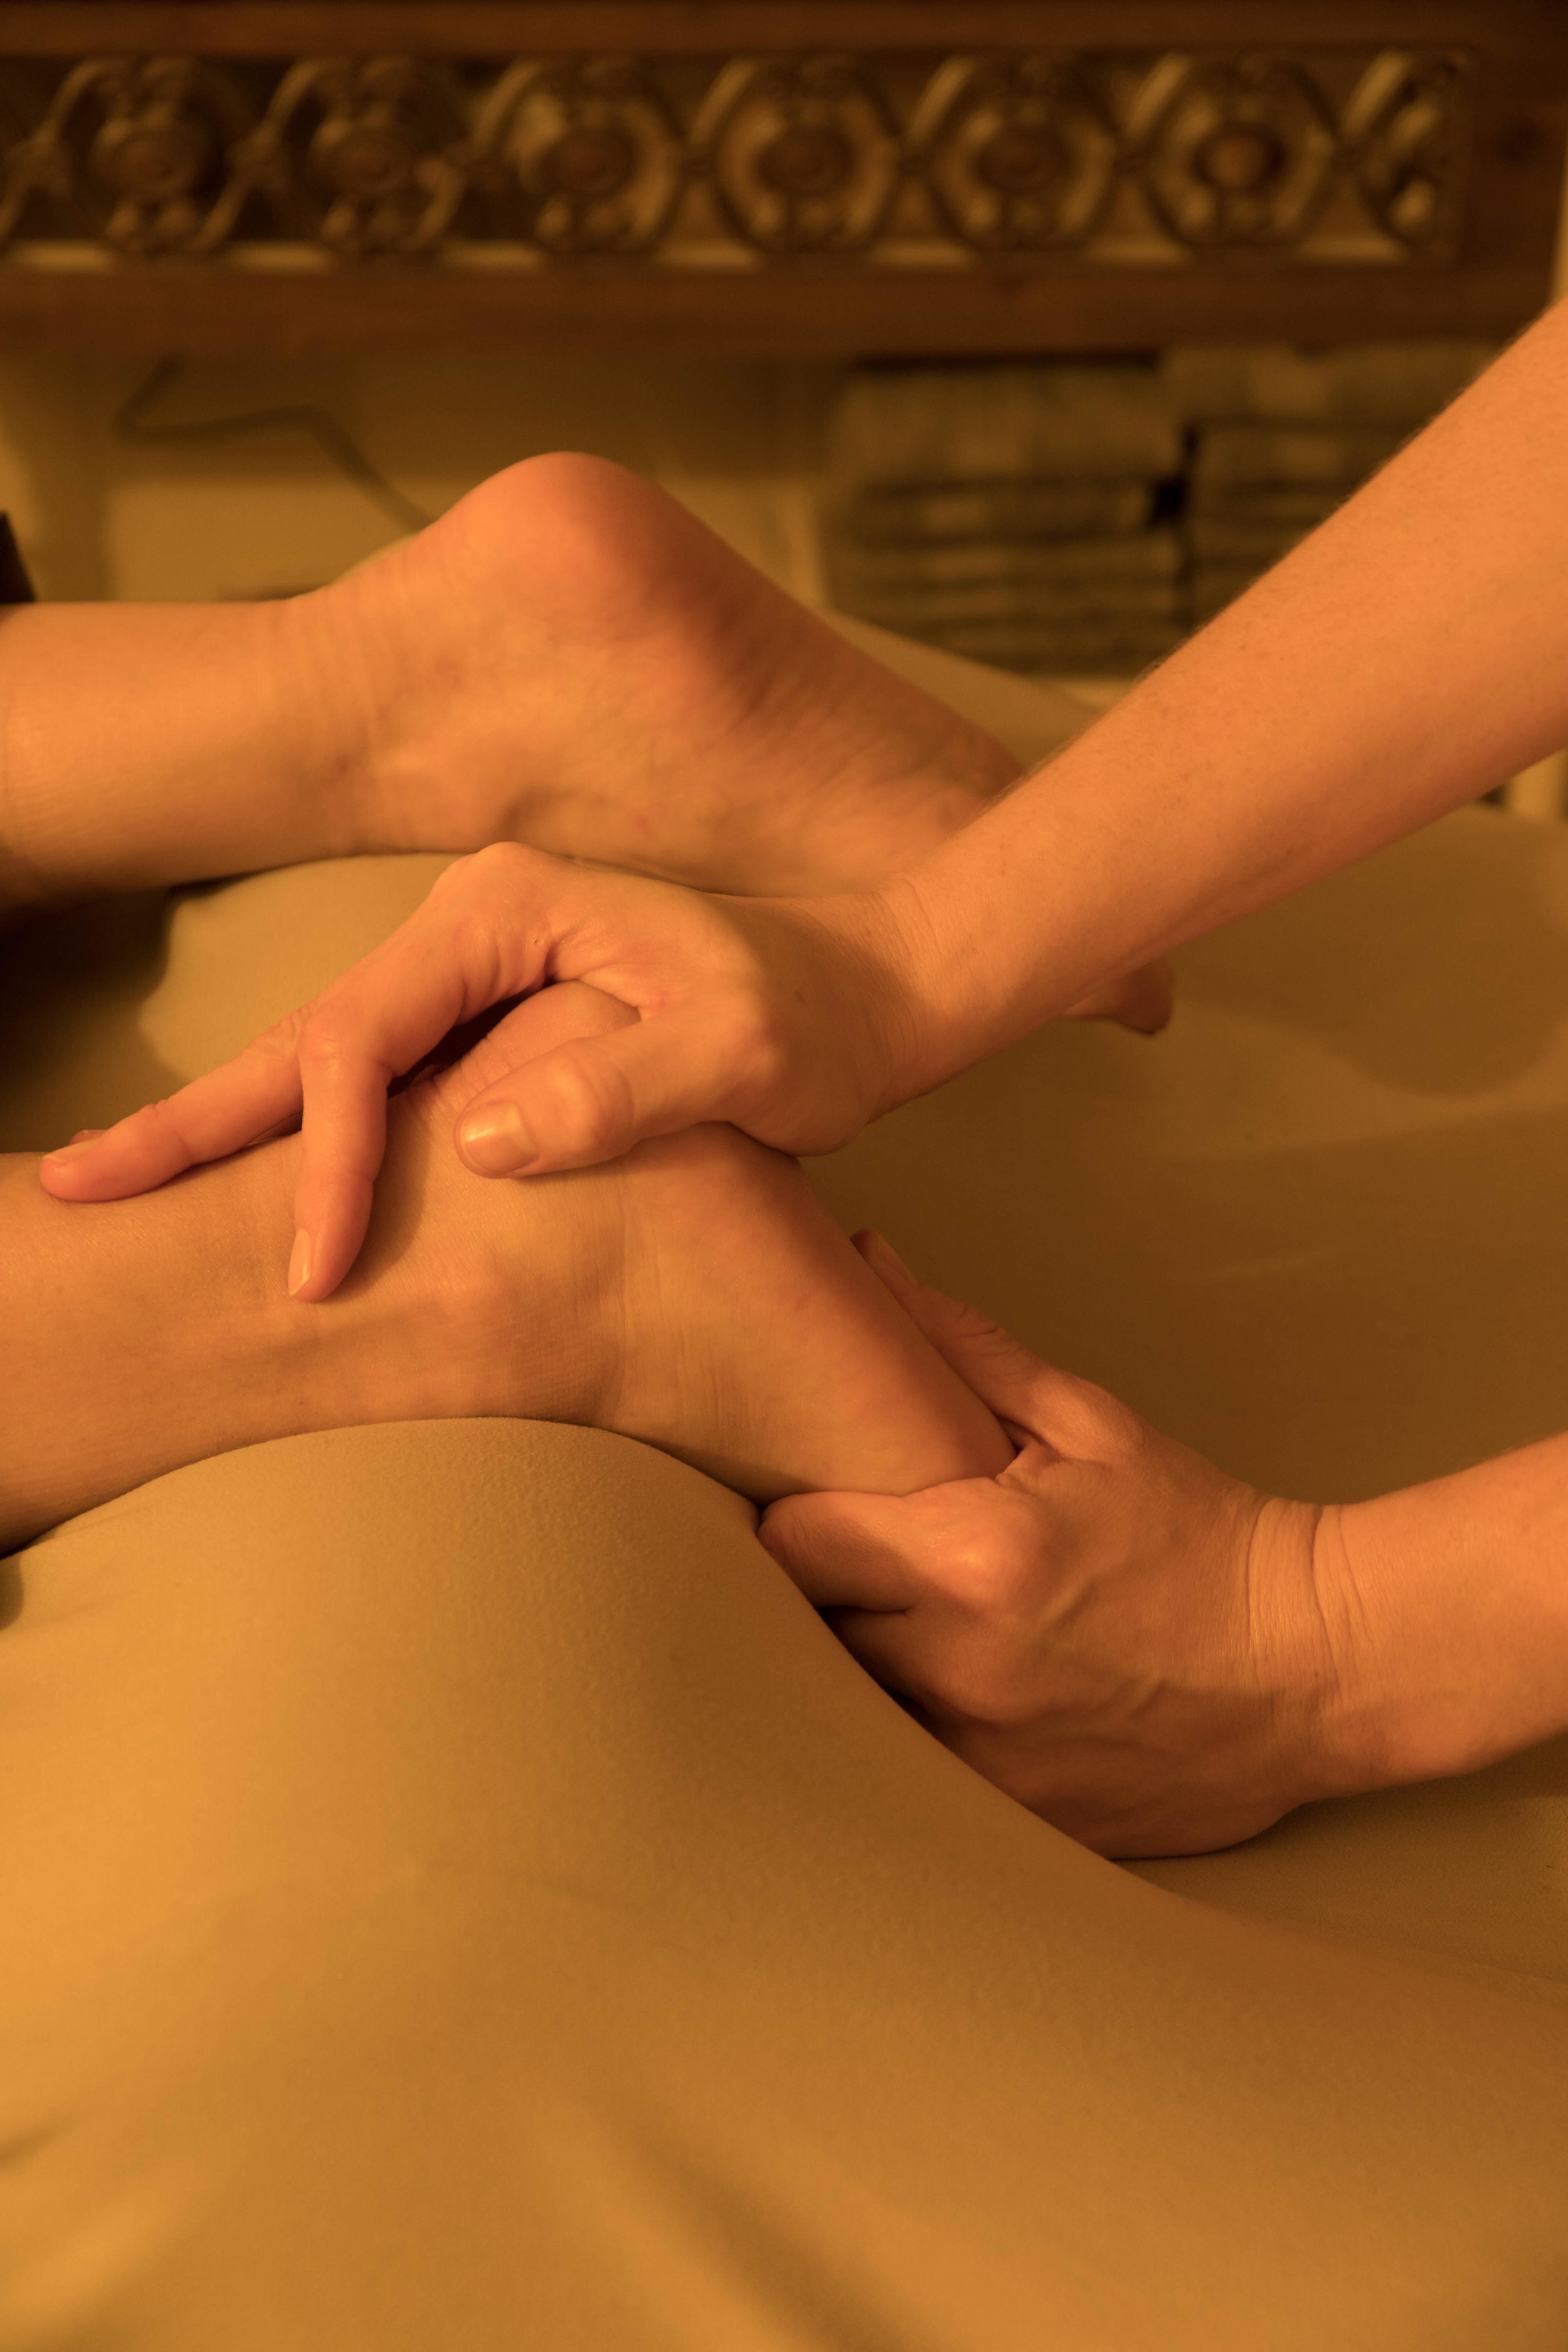 Invigorating Focus Massage, also known as Sports Massage. Provided by Grant, Tamara, Carmella & Jannette.